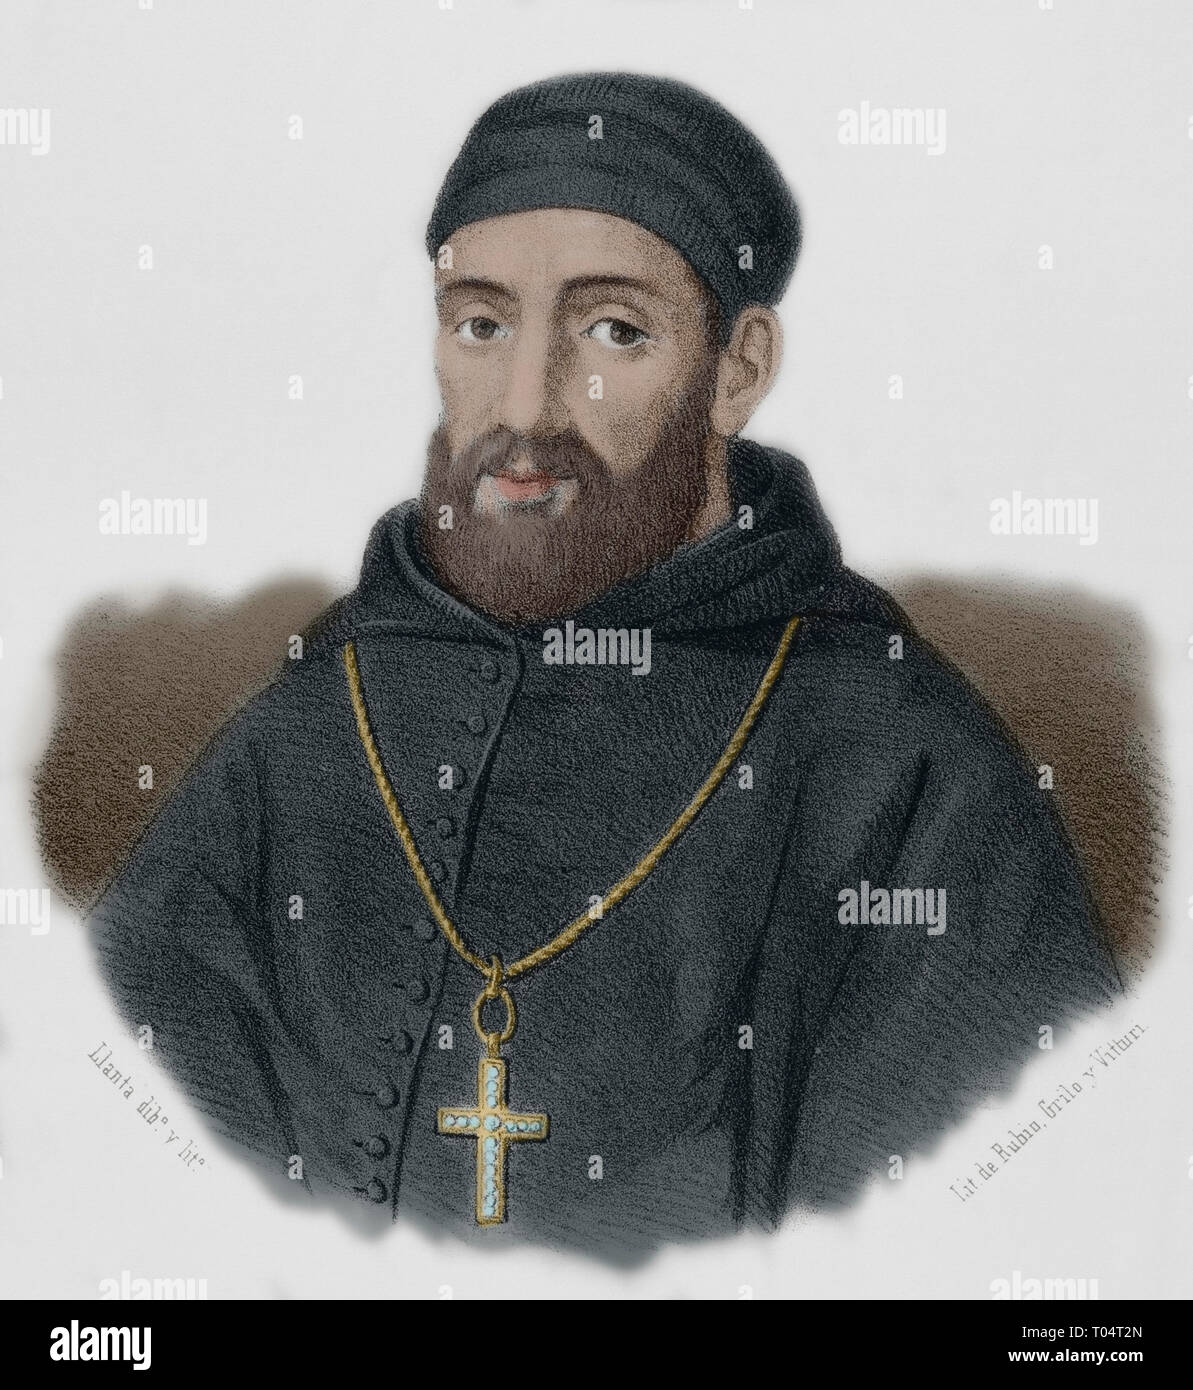 Bartolome Carranza (1503-1576). Navarrese priest,  archbishop and theologian, very influential during the Council of Trento and in the restoration of Roman Catholicism in England. Portrait. Lithography. Drawing by Llanta (1839-1904). Later colouration. Cronica General de España, Historia Ilustrada y Descriptiva de sus Provincias. Extremadura, 1870. - Stock Image